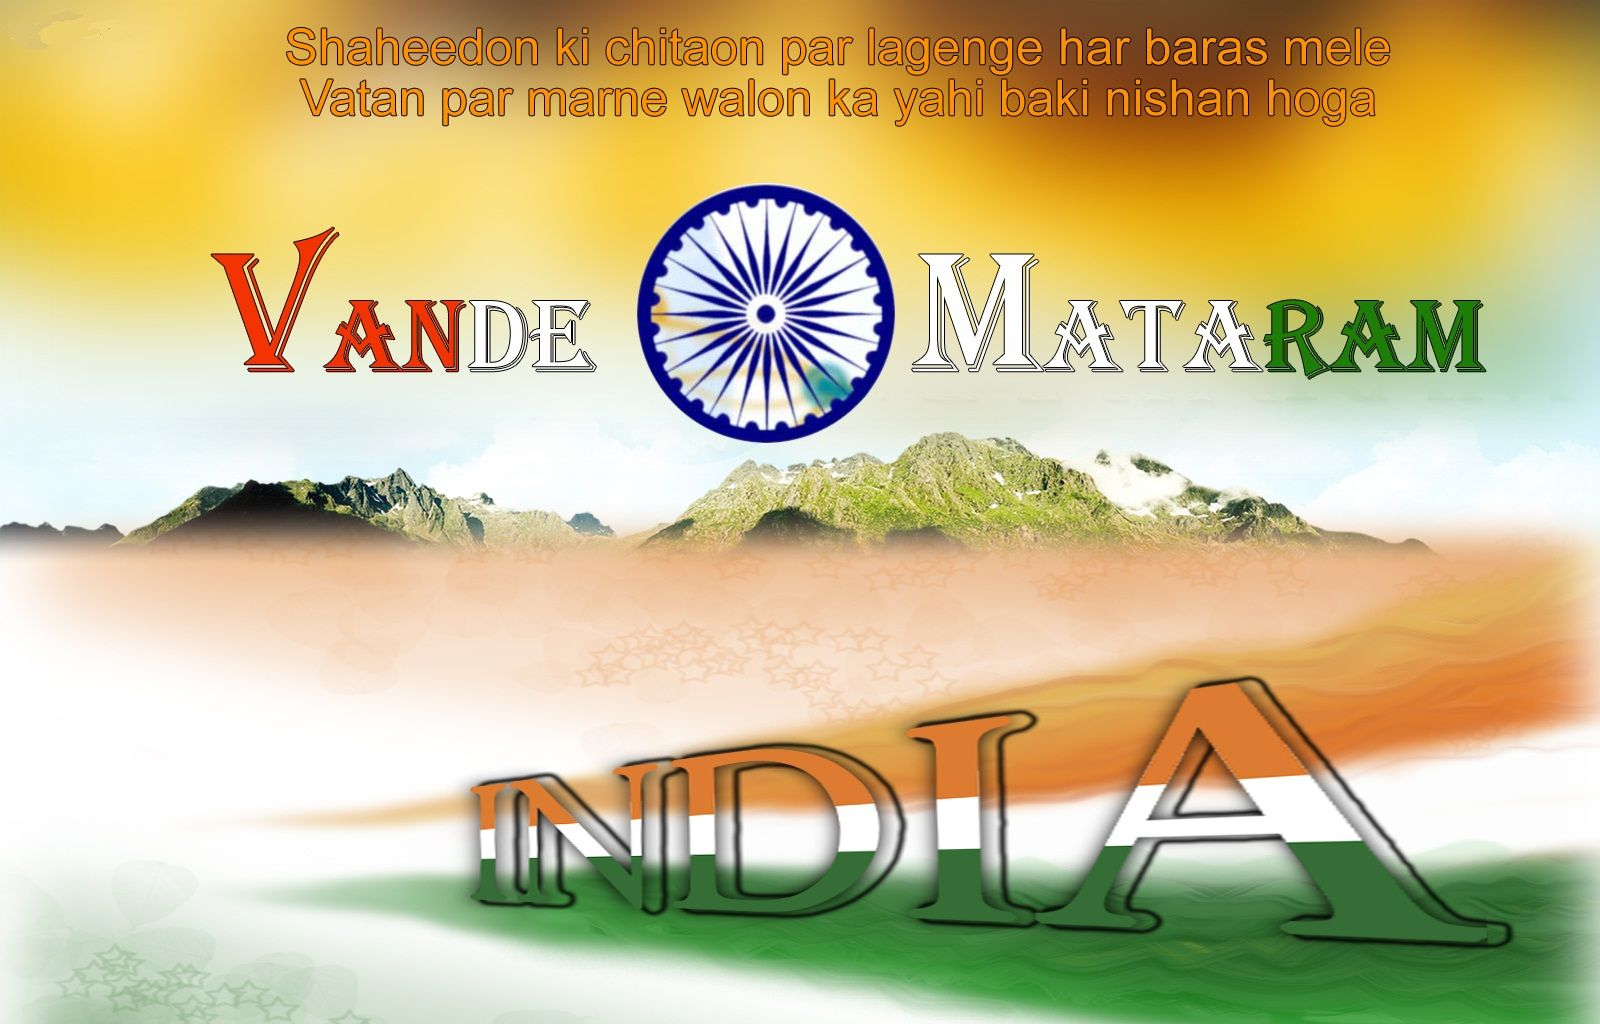 Independence day quotes and wishes independence day india independence day quotes and wishes kristyandbryce Gallery